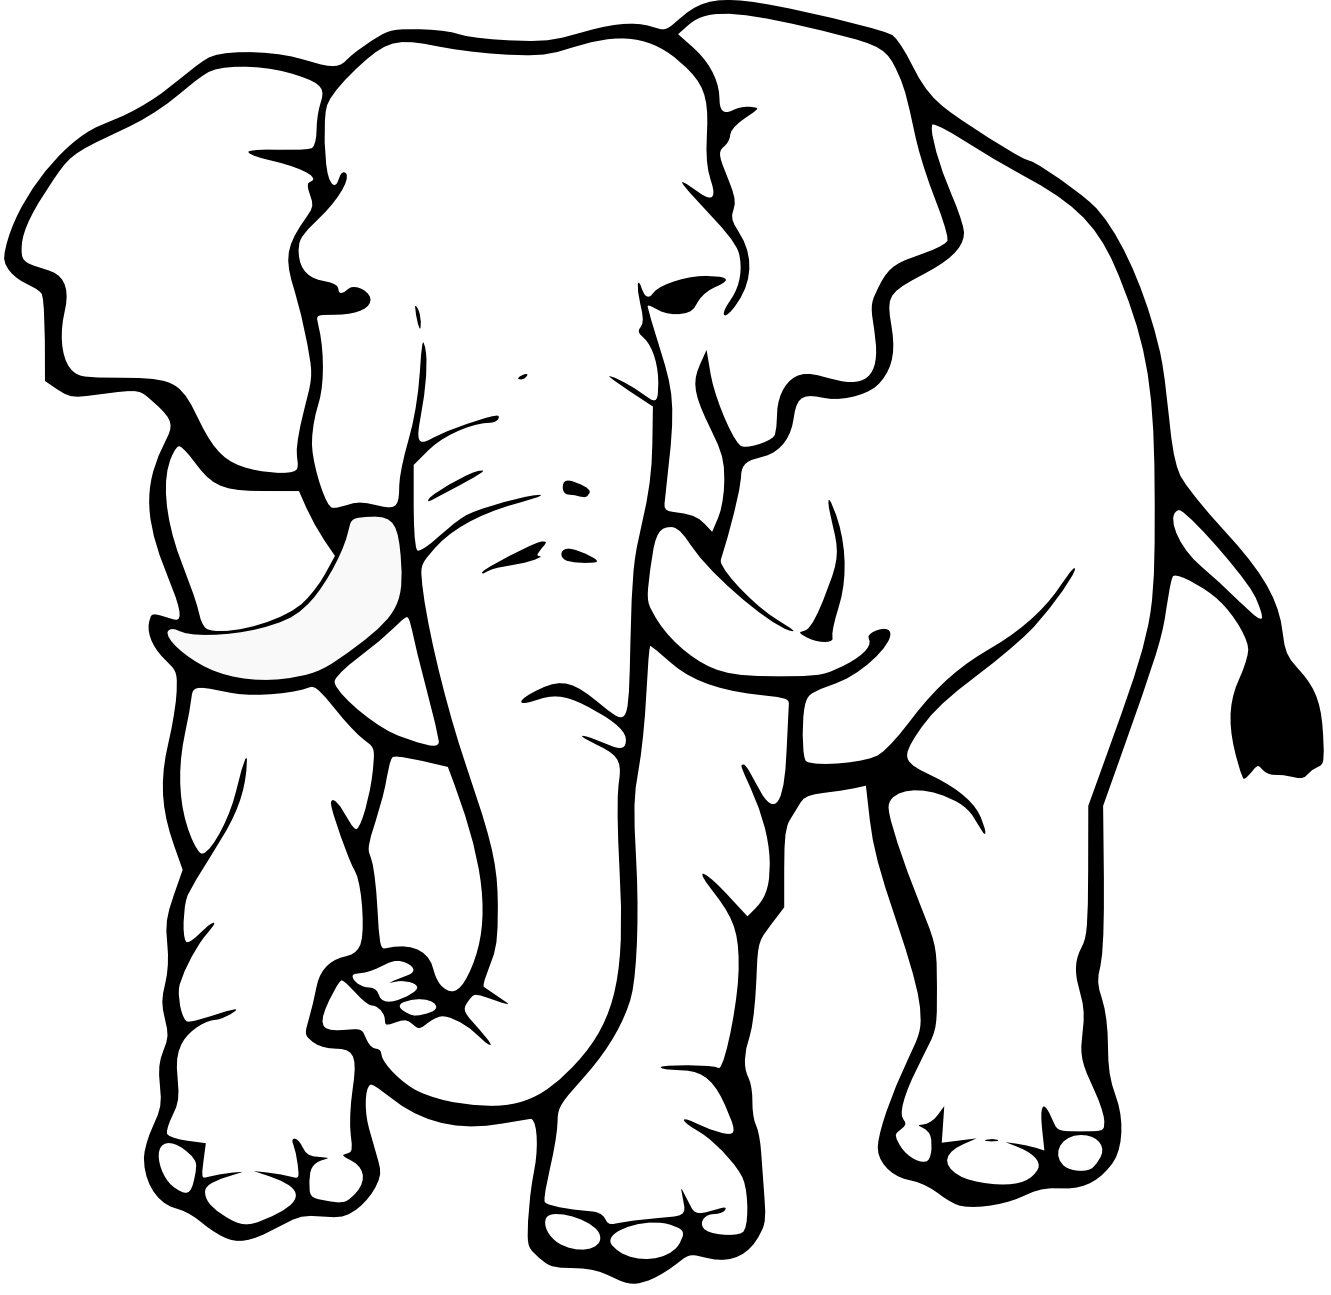 Drawing elephants black and white. Collection of elephant